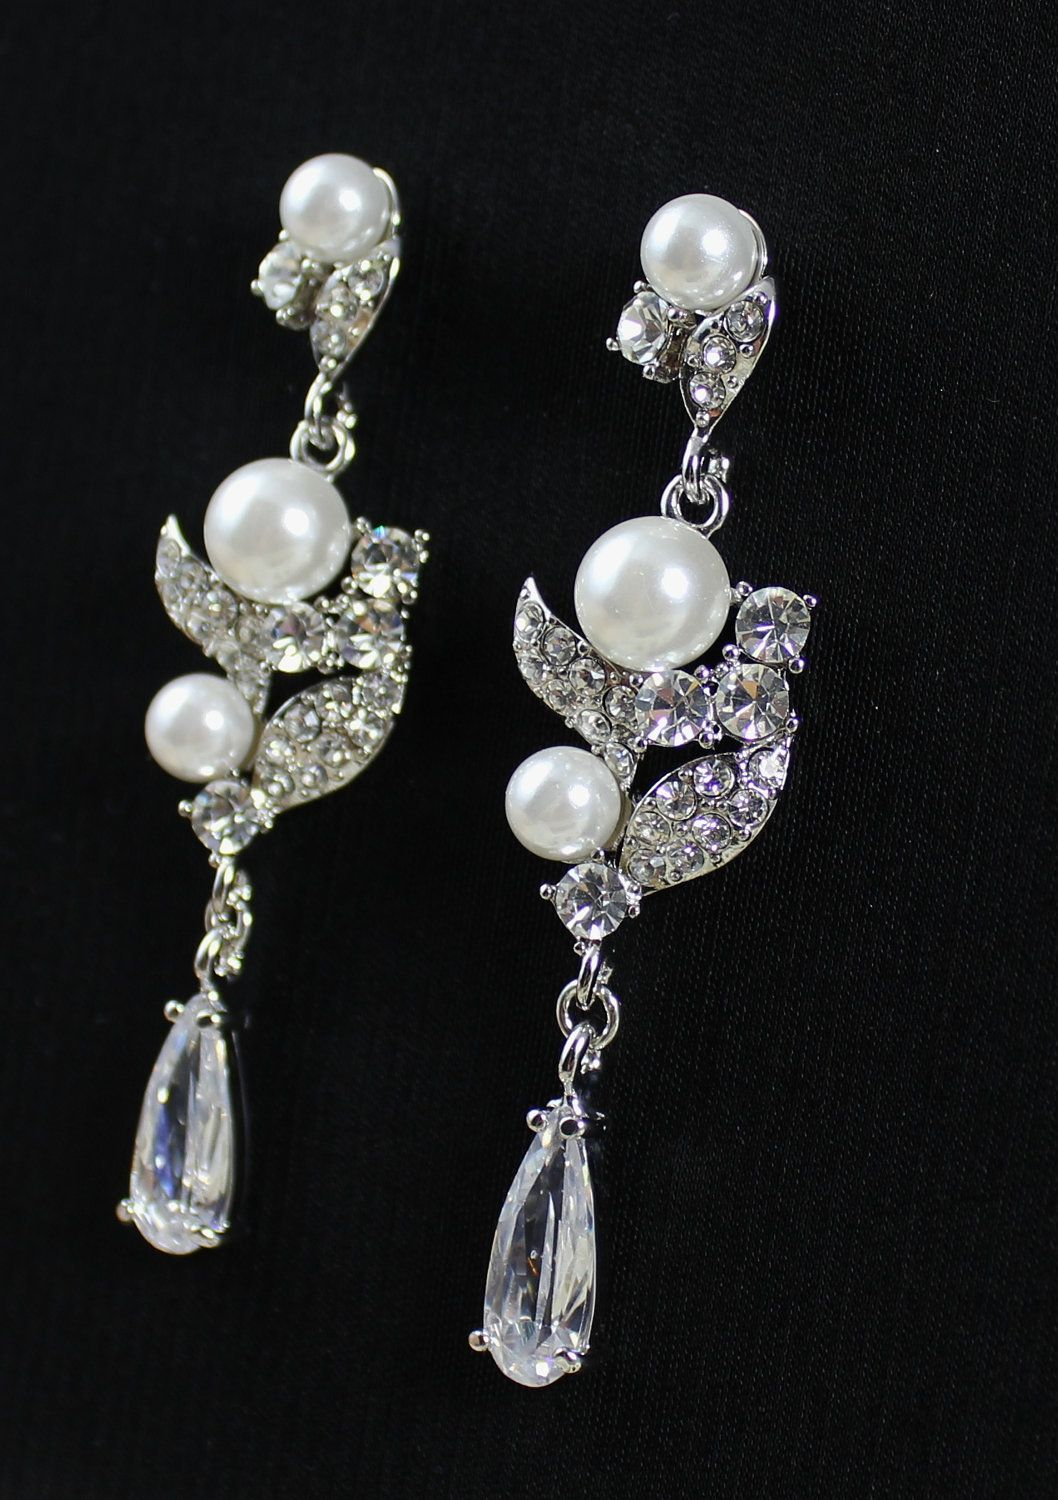 Chandelier wedding earrings crystal rhinestone and pearl bridal chandelier wedding earrings crystal rhinestone and pearl bridal earrings erin be frosted 5100 arubaitofo Choice Image